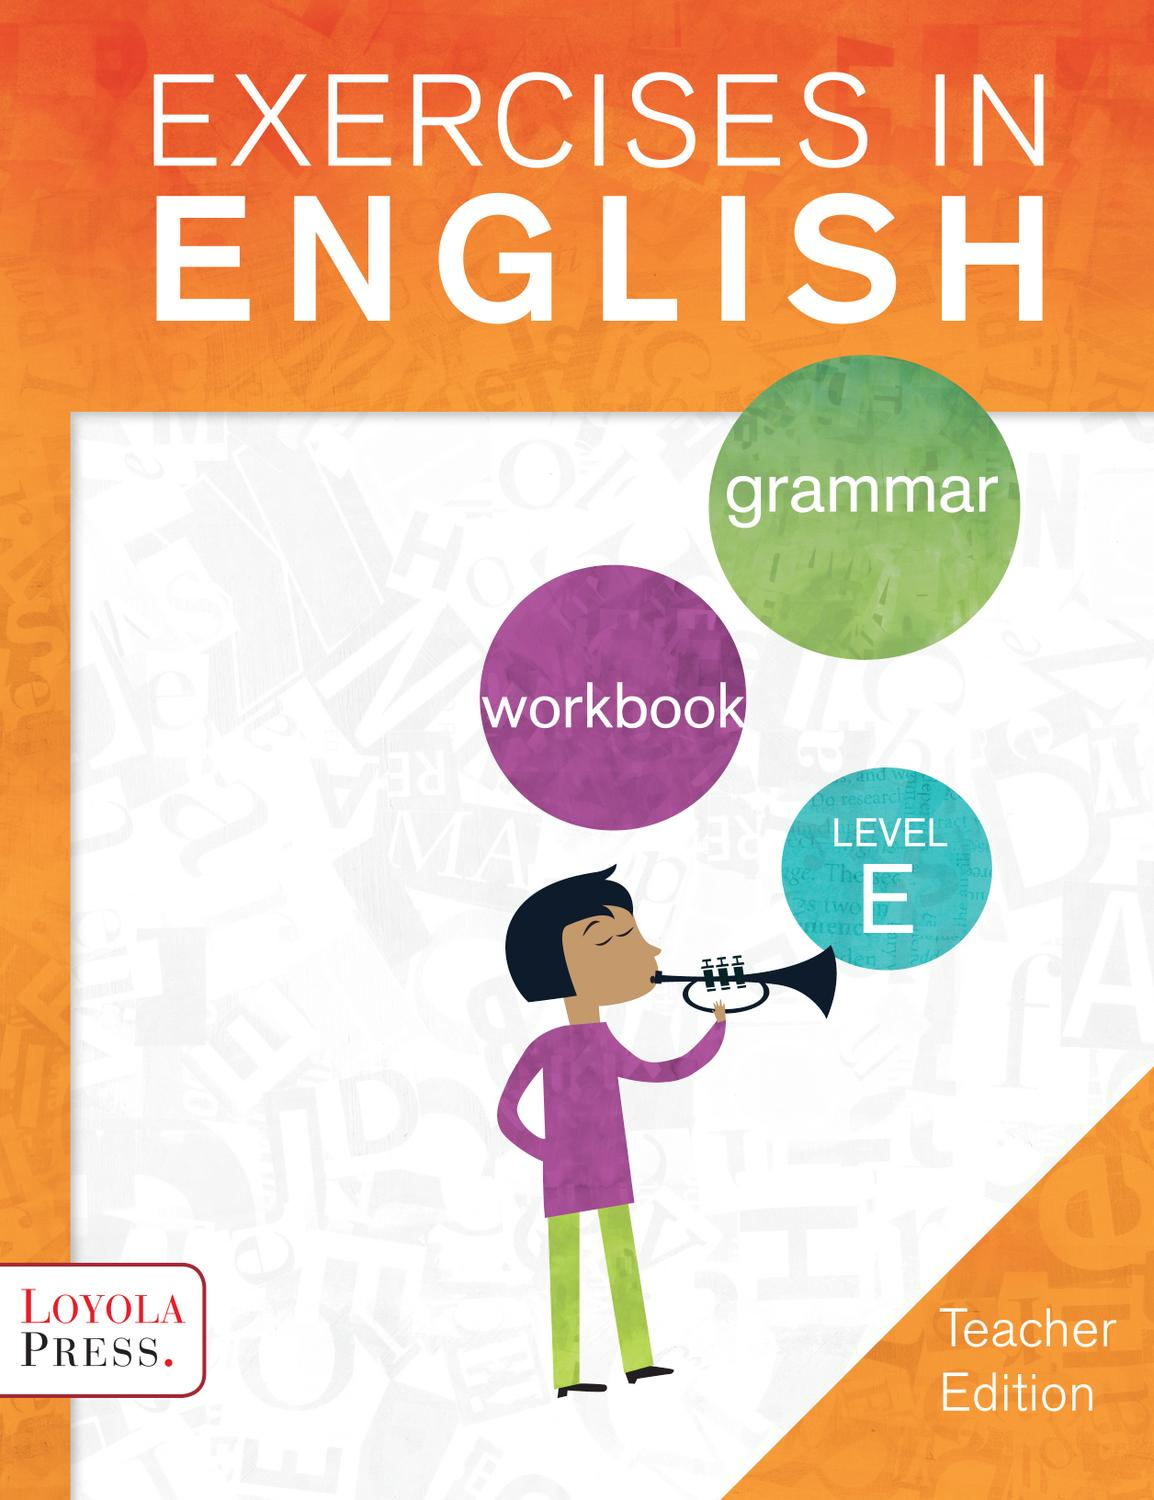 Exercises in English 2013 Level E (Teacher edition) by Loyola Press ...